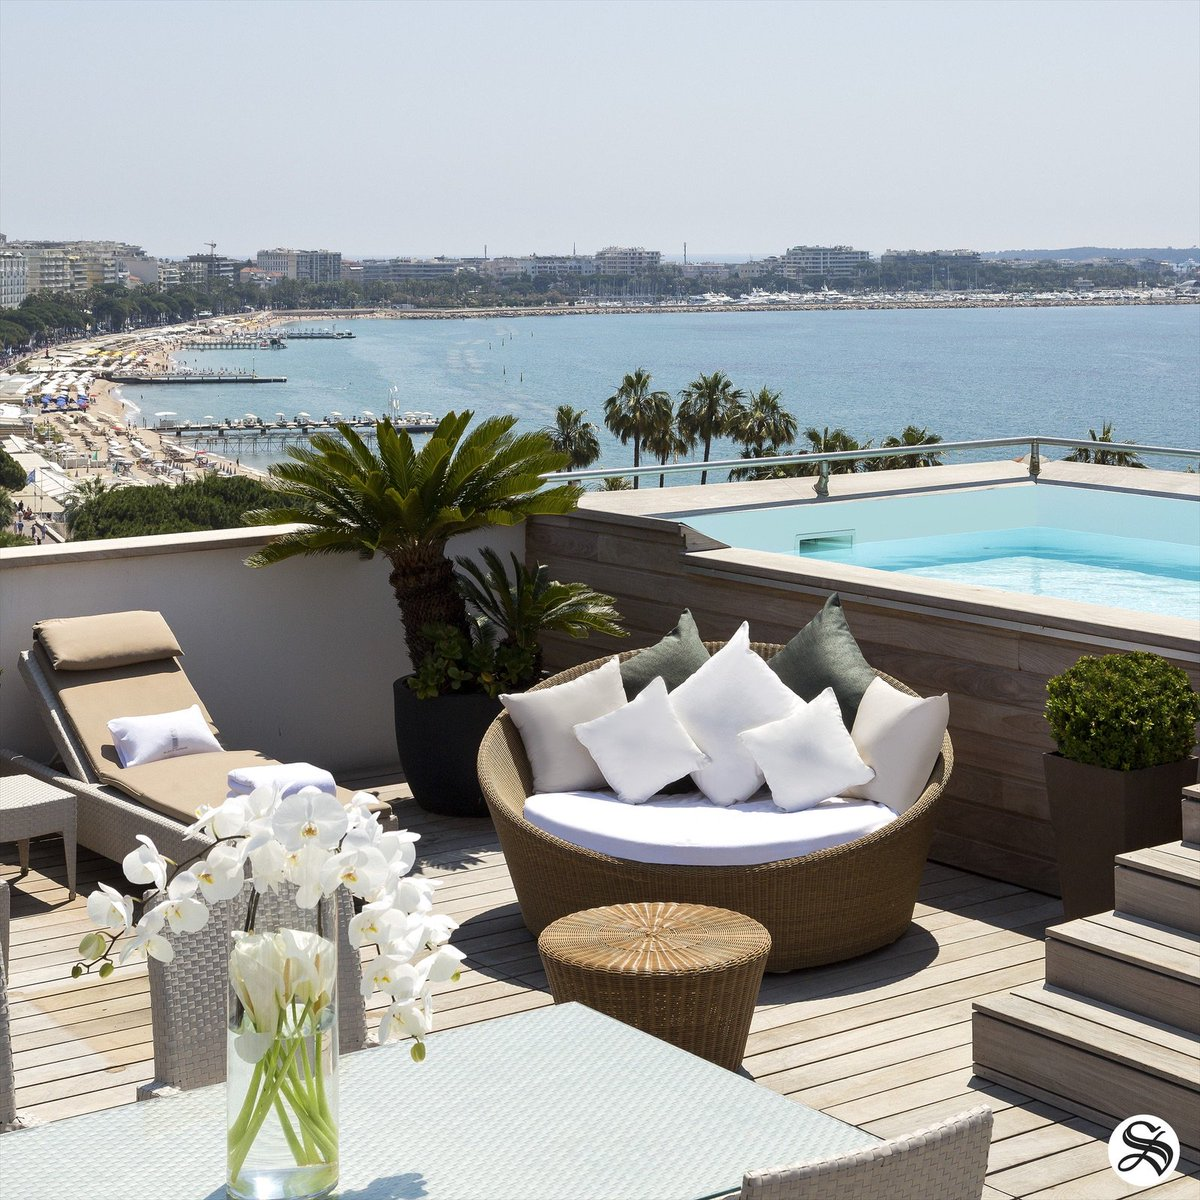 Luxury, prestige and excellence on the Croisette, in Cannes ! 🌴☀️#cannes #croisette #lemajesticcannes #hotelsbarriere